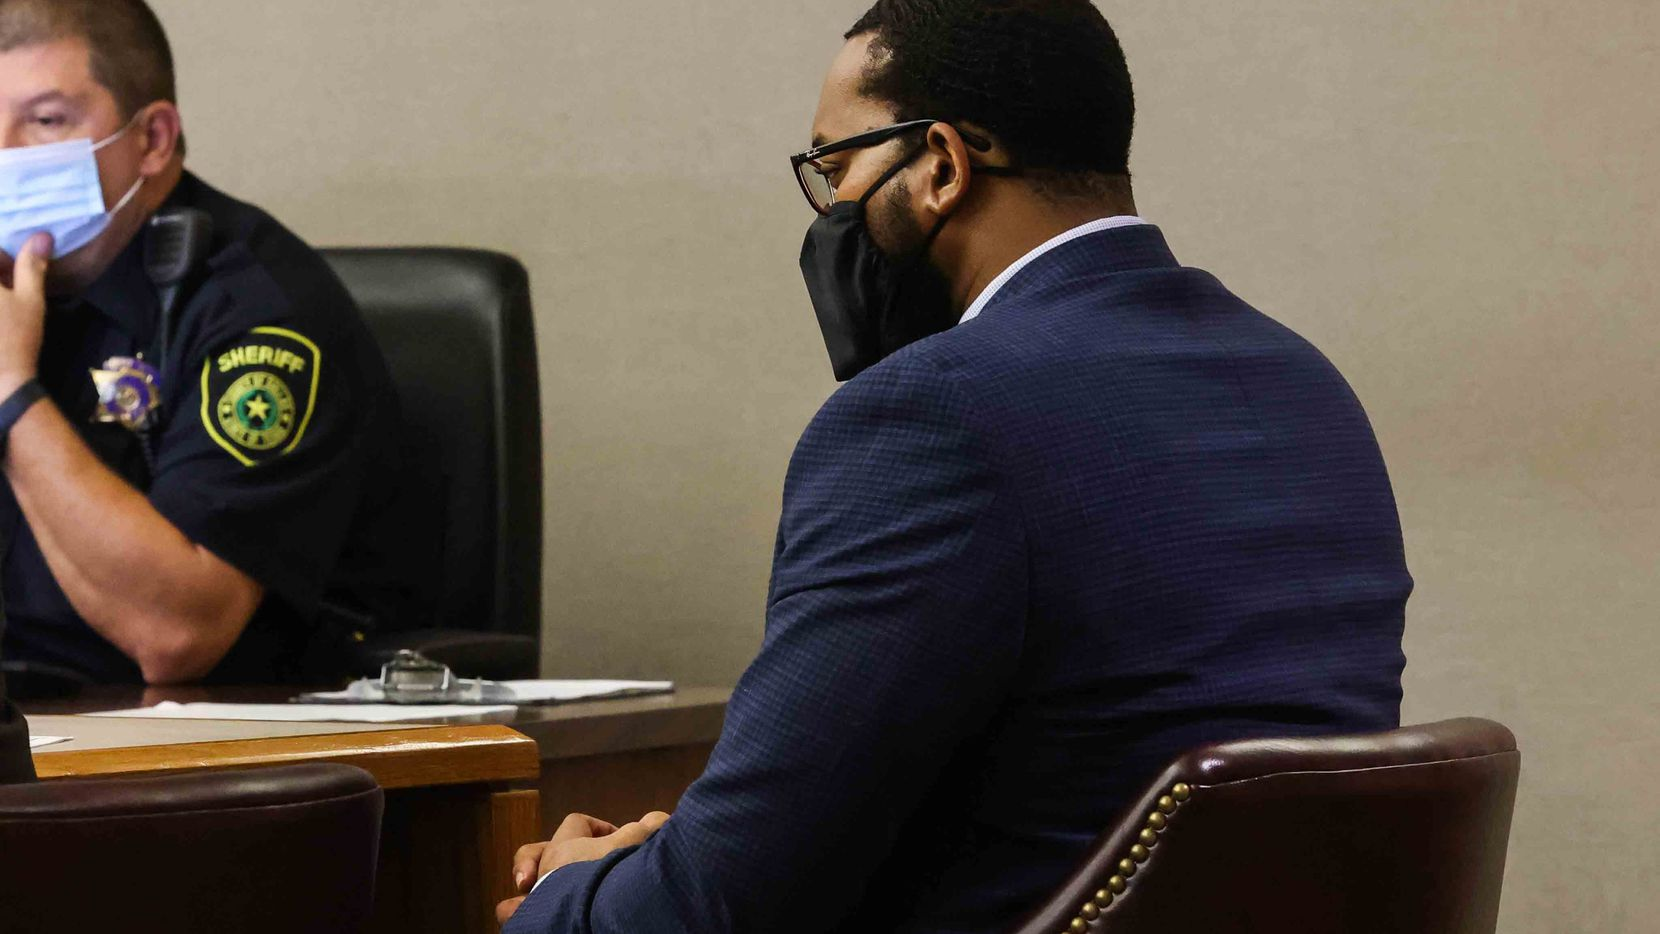 Terrelwin Jones (shown) could face up to 20 years in prison if he violates any of the terms of his probation.